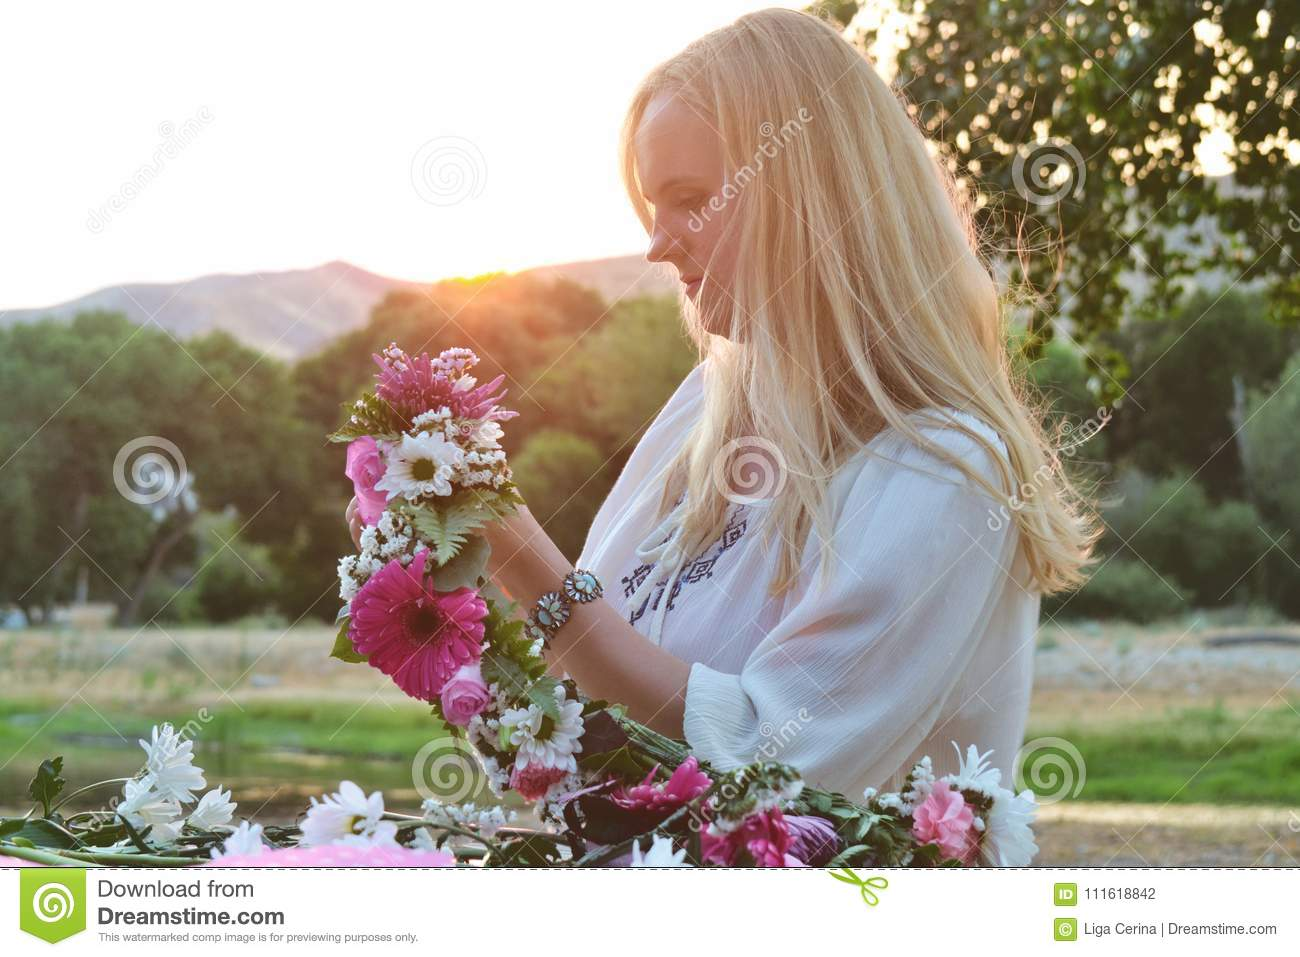 Flower Crown And Woman Stock Photo Image Of Light Flower 111618842